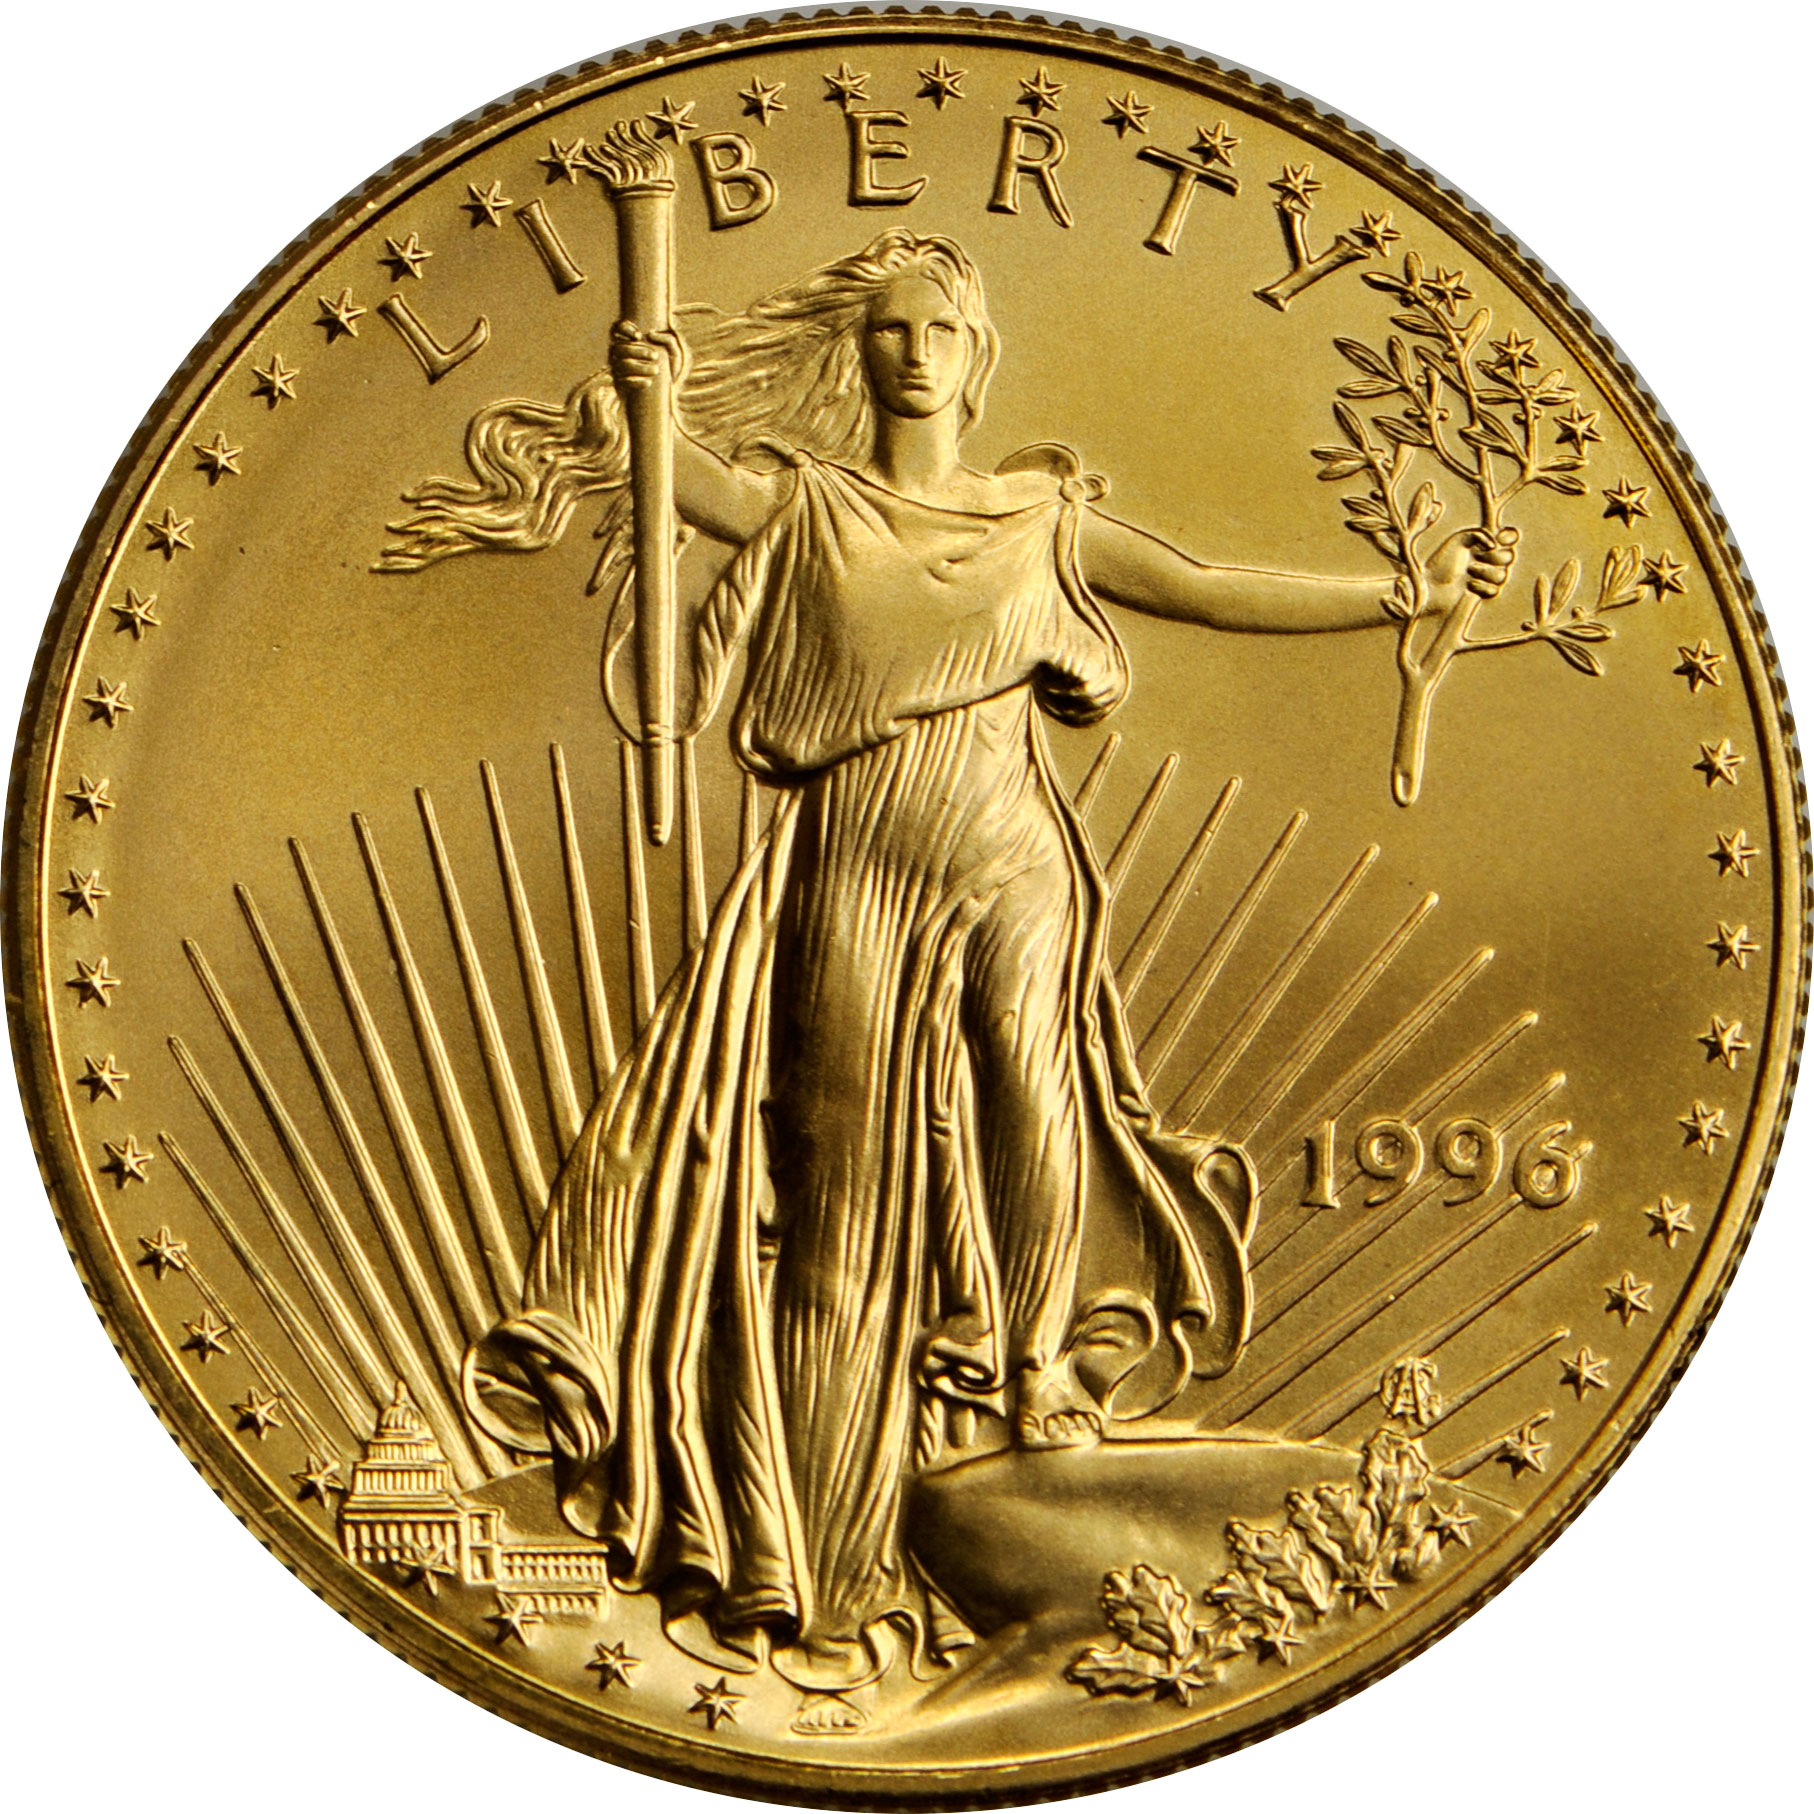 What Is The Current Value Of An Ounce Of Gold April 2019